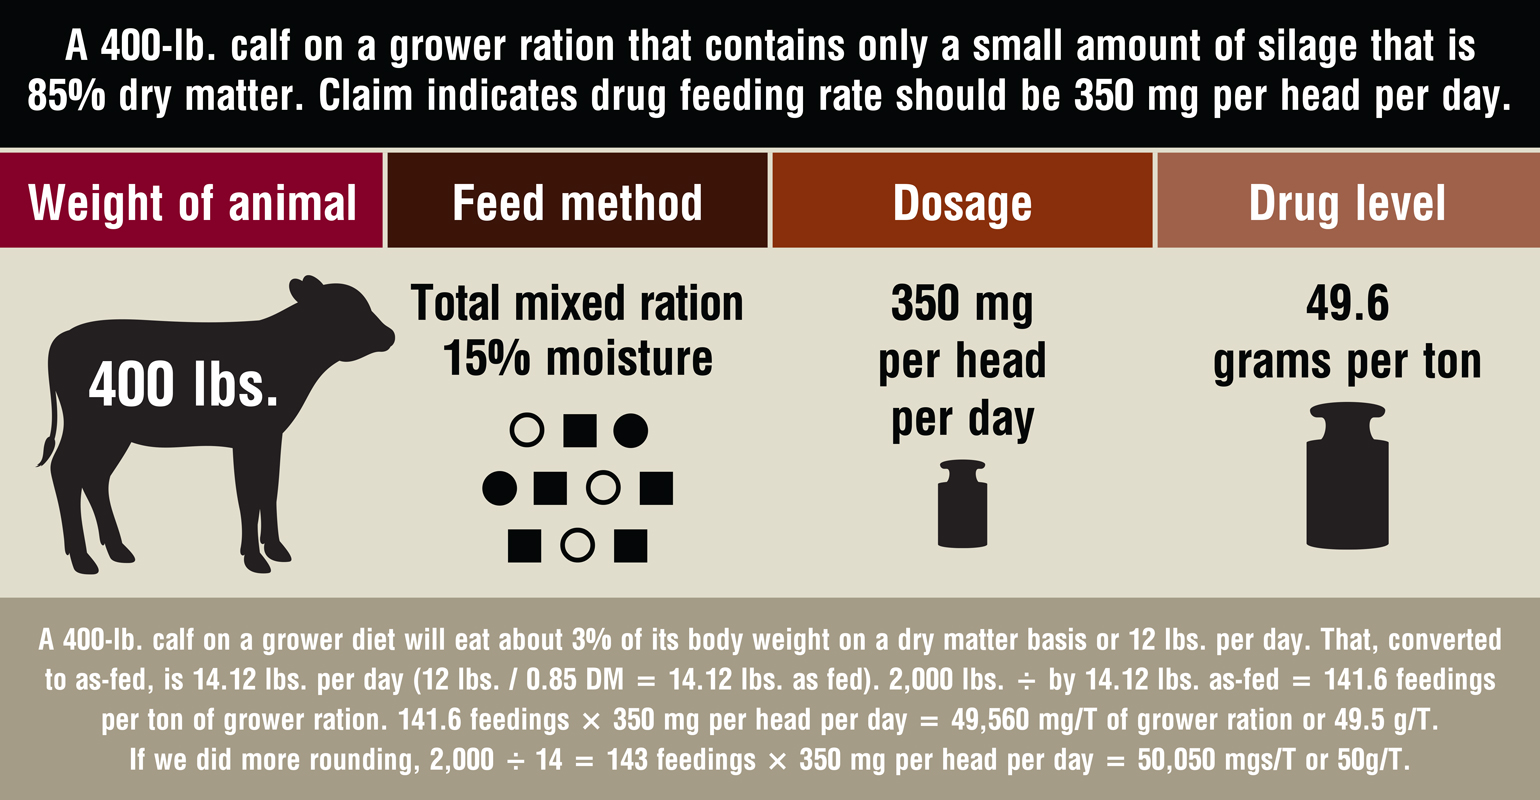 How to correctly calculate grams per ton of drugs in feed